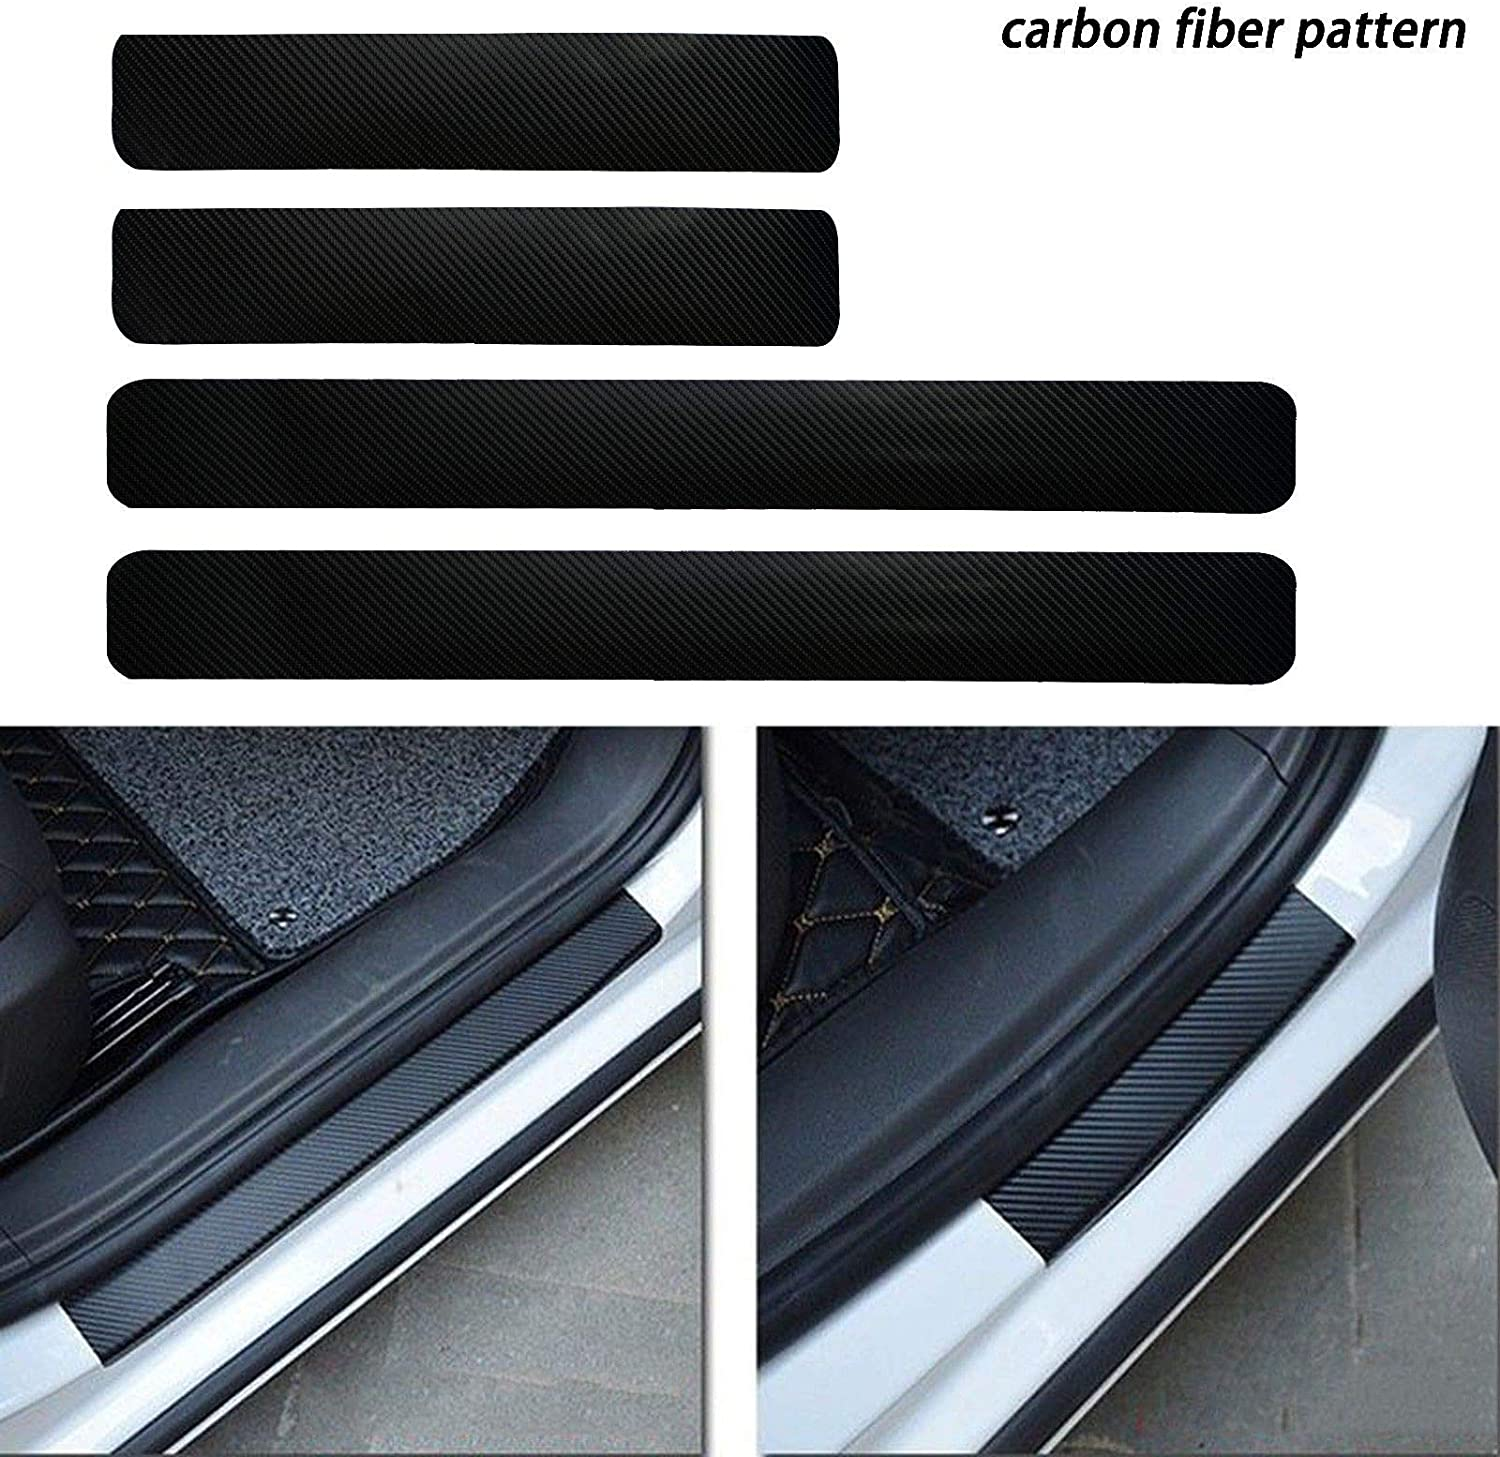 Xotic Tech 4X Carbon Fiber Pattern Door Sill Protector Door Sill Pedal Cover Stickers Bumper Protector Car Interior Accessories Cover Existing Scratch and Door Anti Scratch Decal